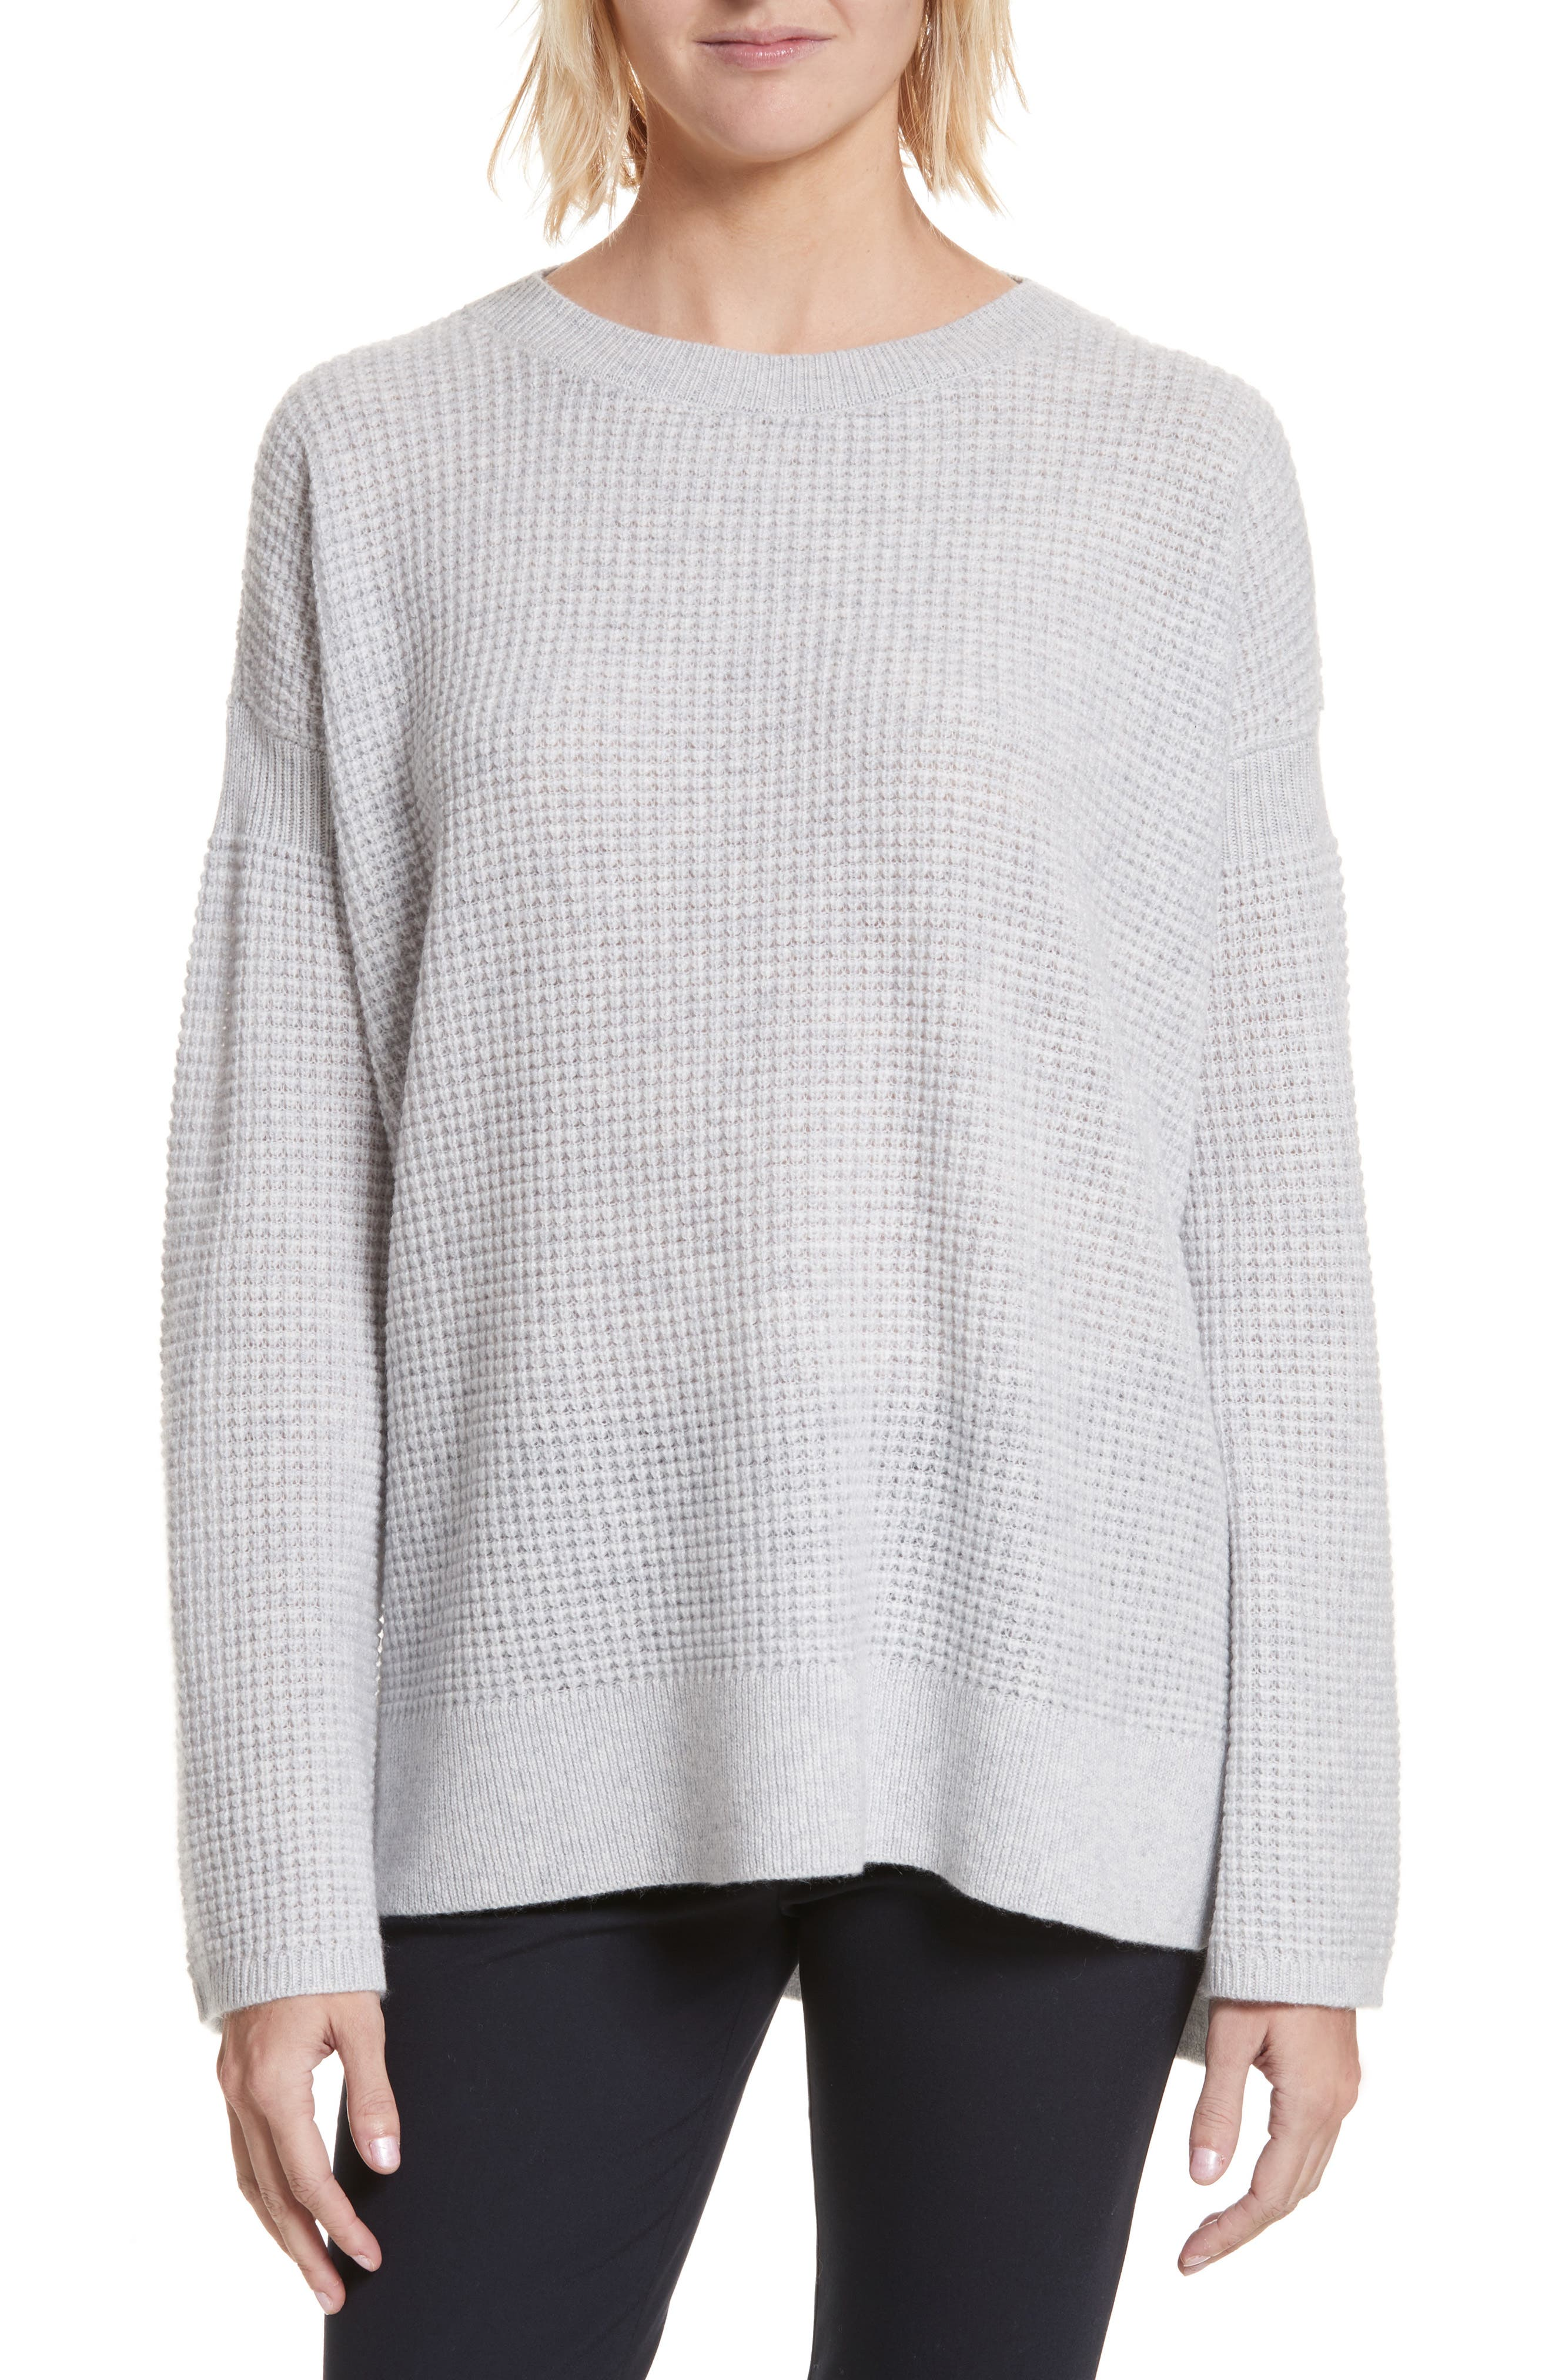 Cinch Sleeve Cashmere Sweater,                         Main,                         color, Whale Grey